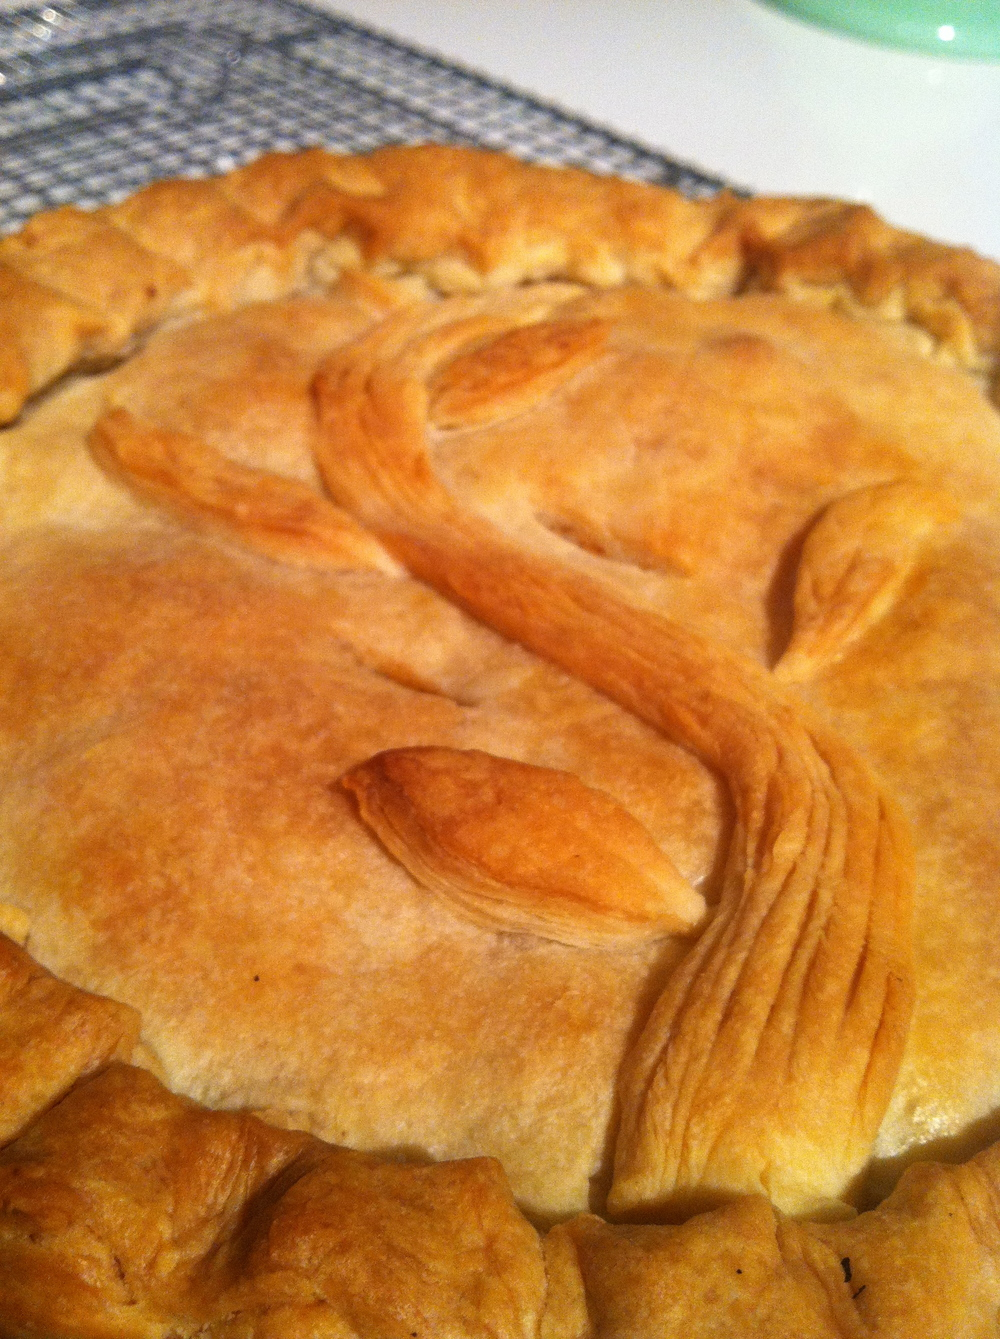 The bottom leaf reveals the toothsome layers achieved by folding the pastry.  Some, but not too much puff.